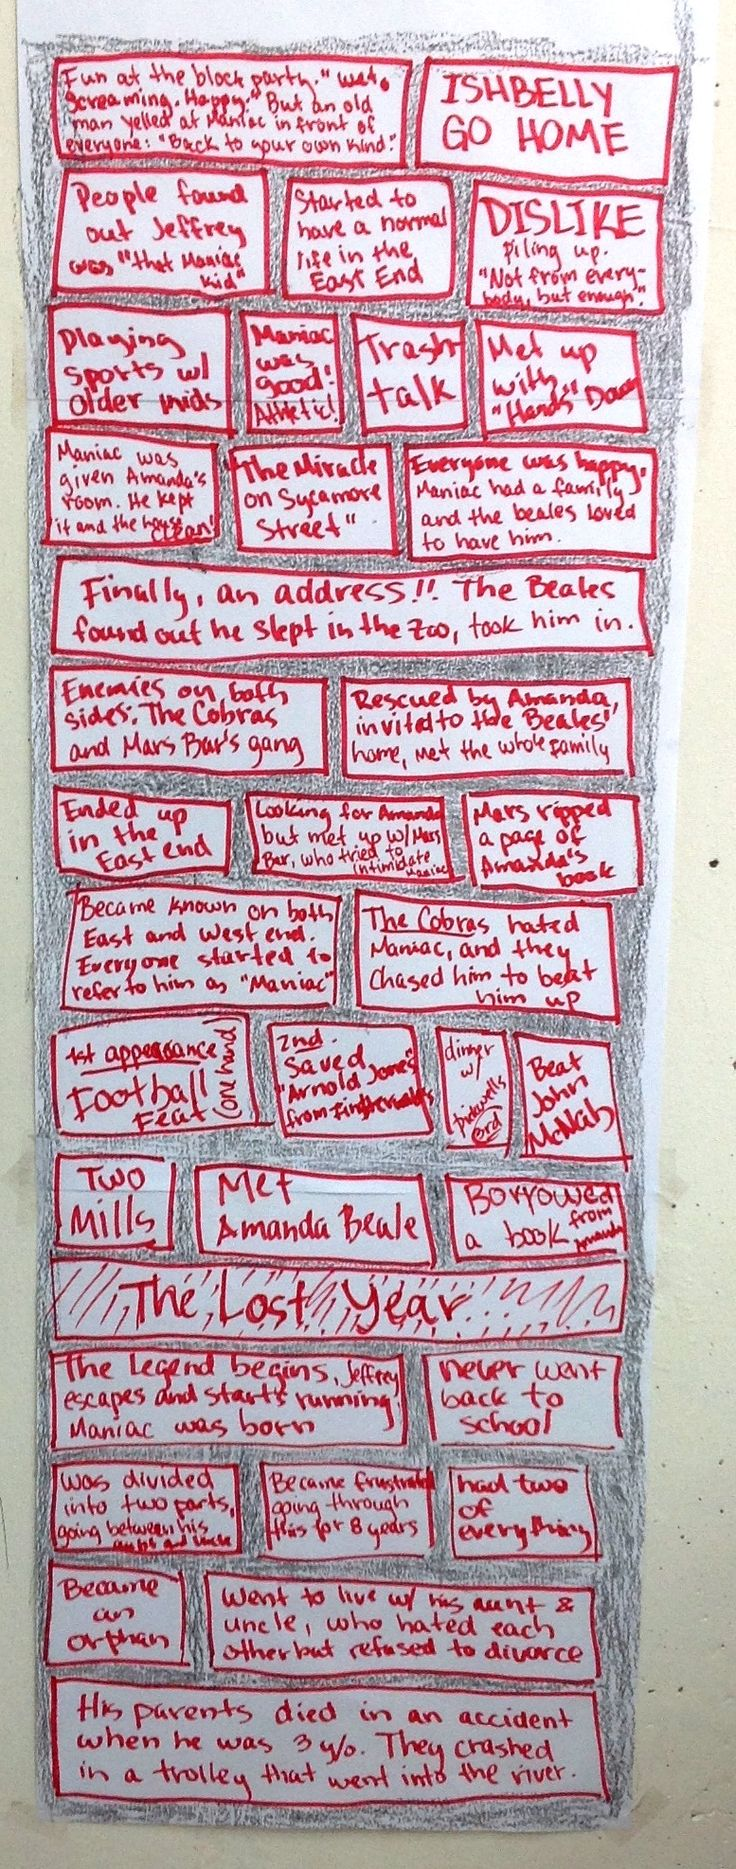 worksheet Maniac Magee Worksheets best 25 maniac magee ideas on pinterest pete the cat author 6th grade synthesis wall for magee